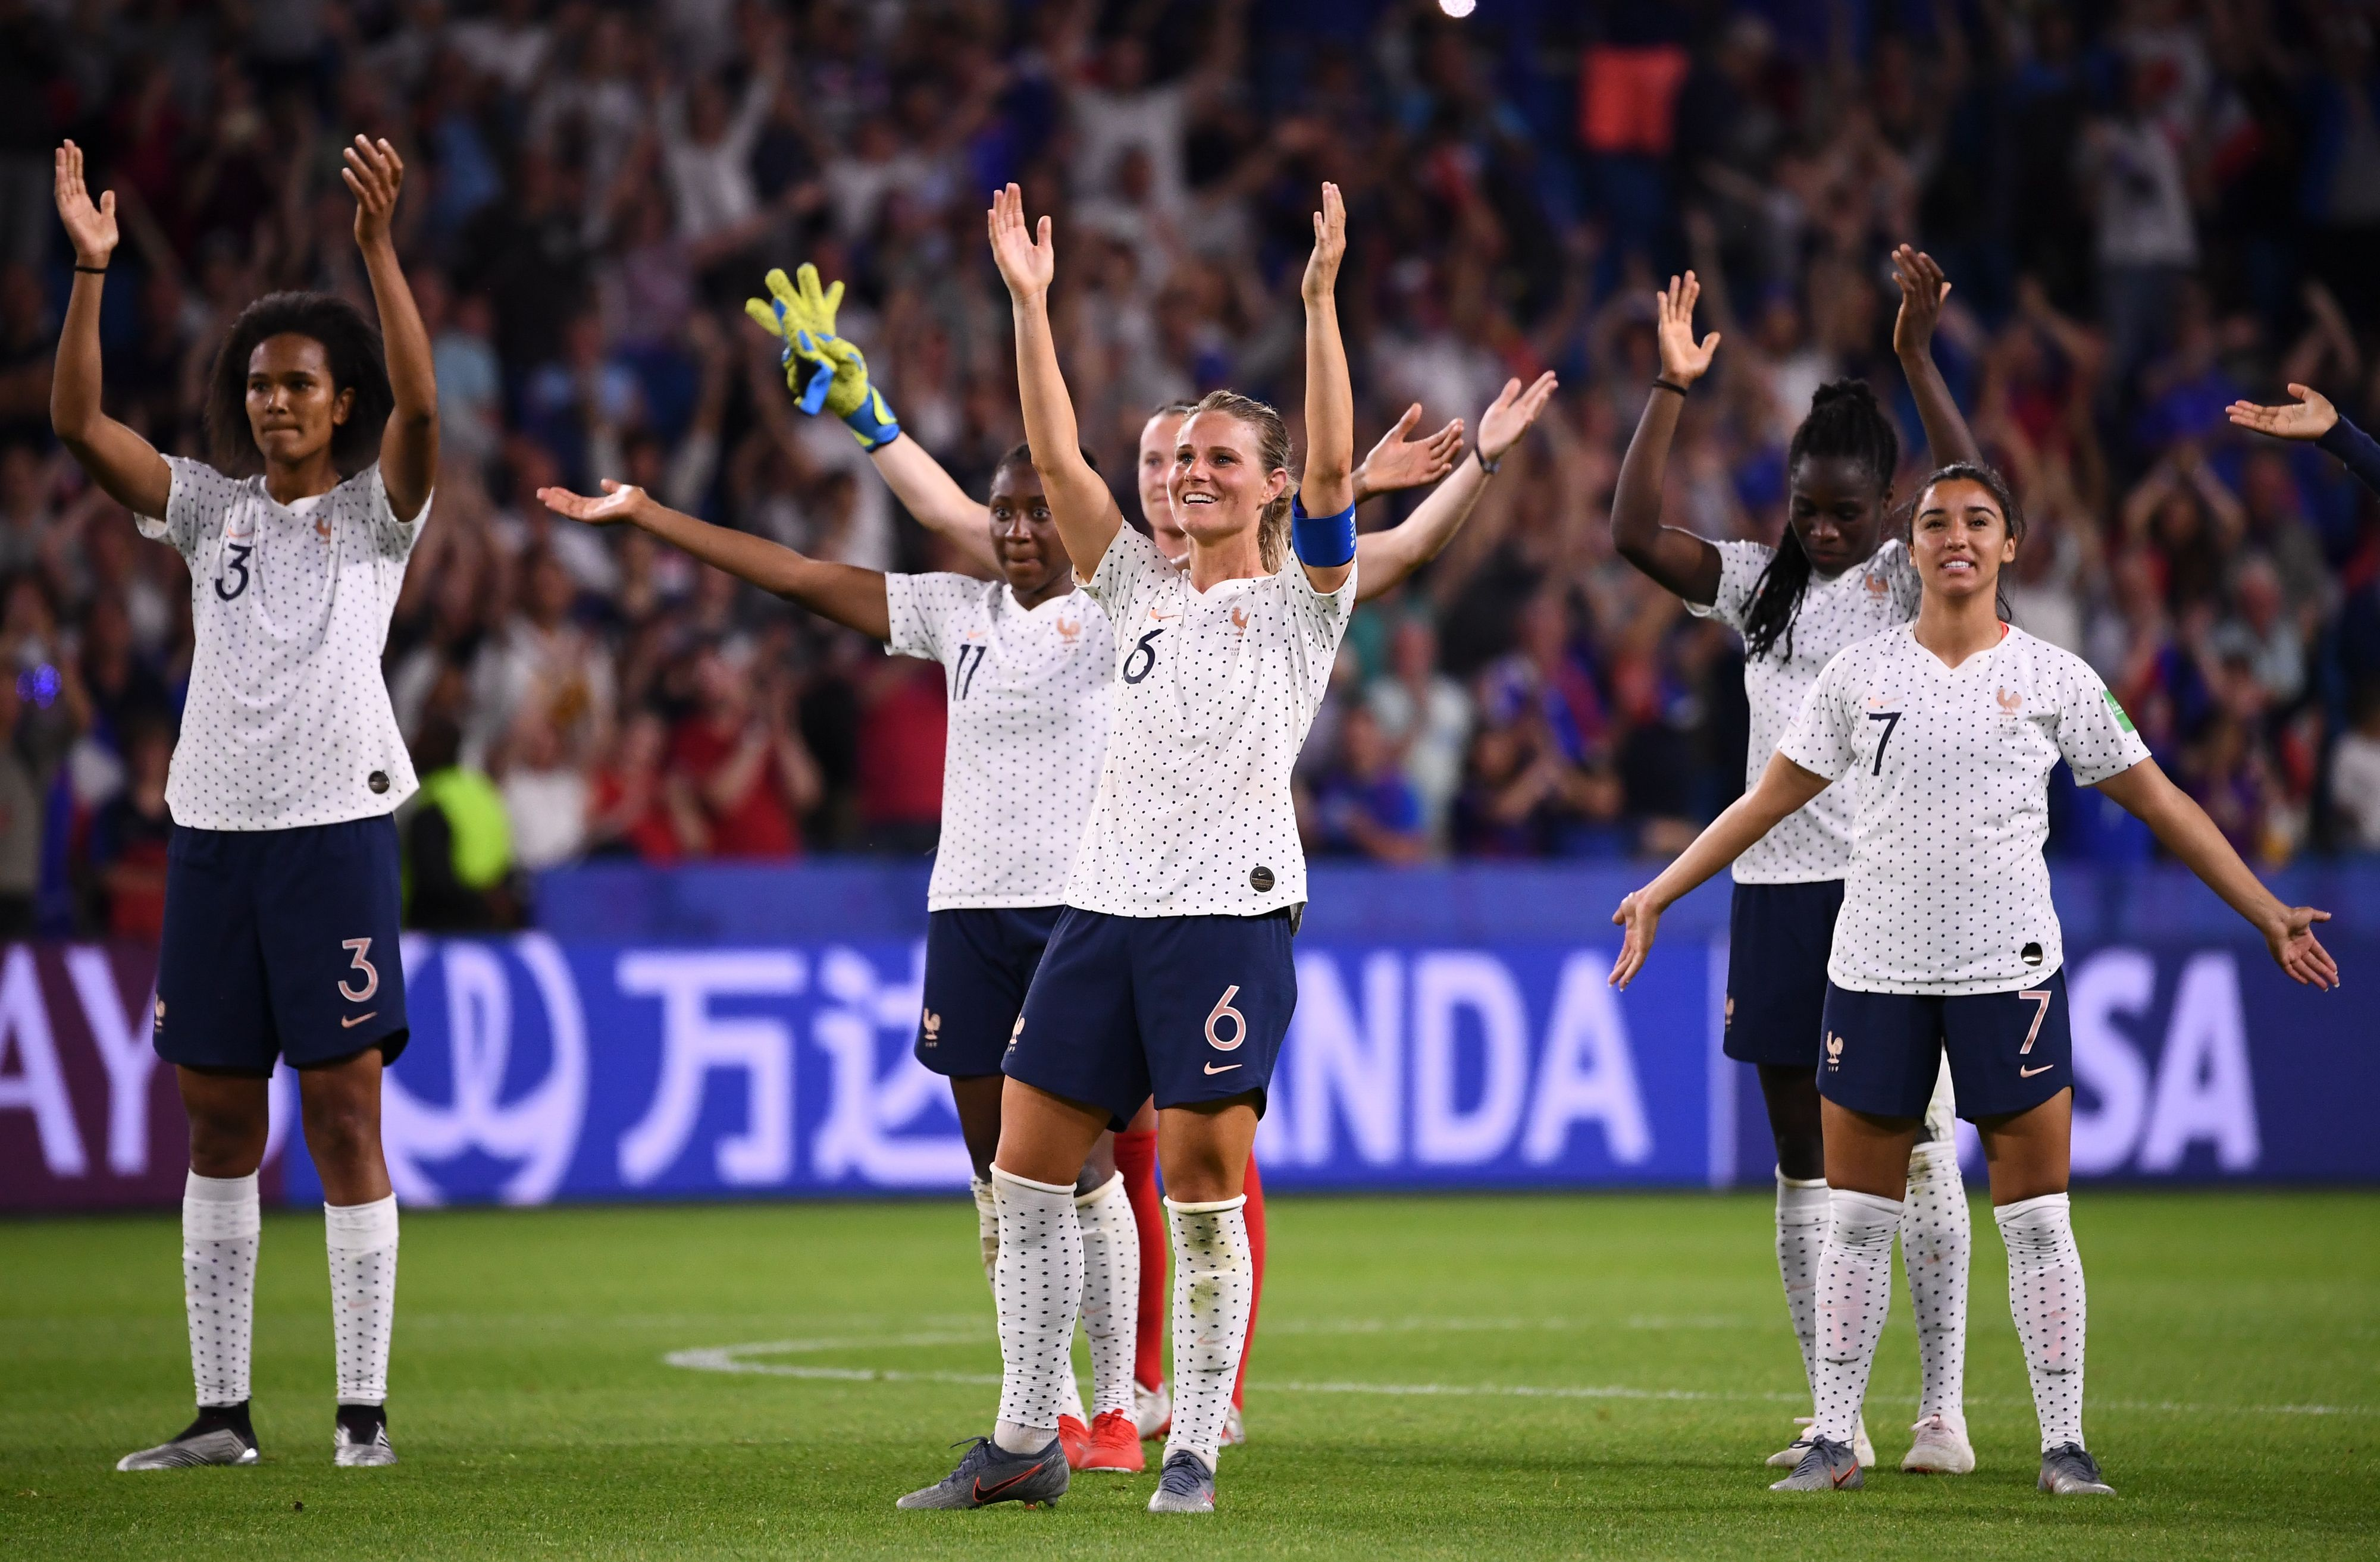 France Women S Soccer Team Will Look To Upset Uswnt At World Cup The Washington Post